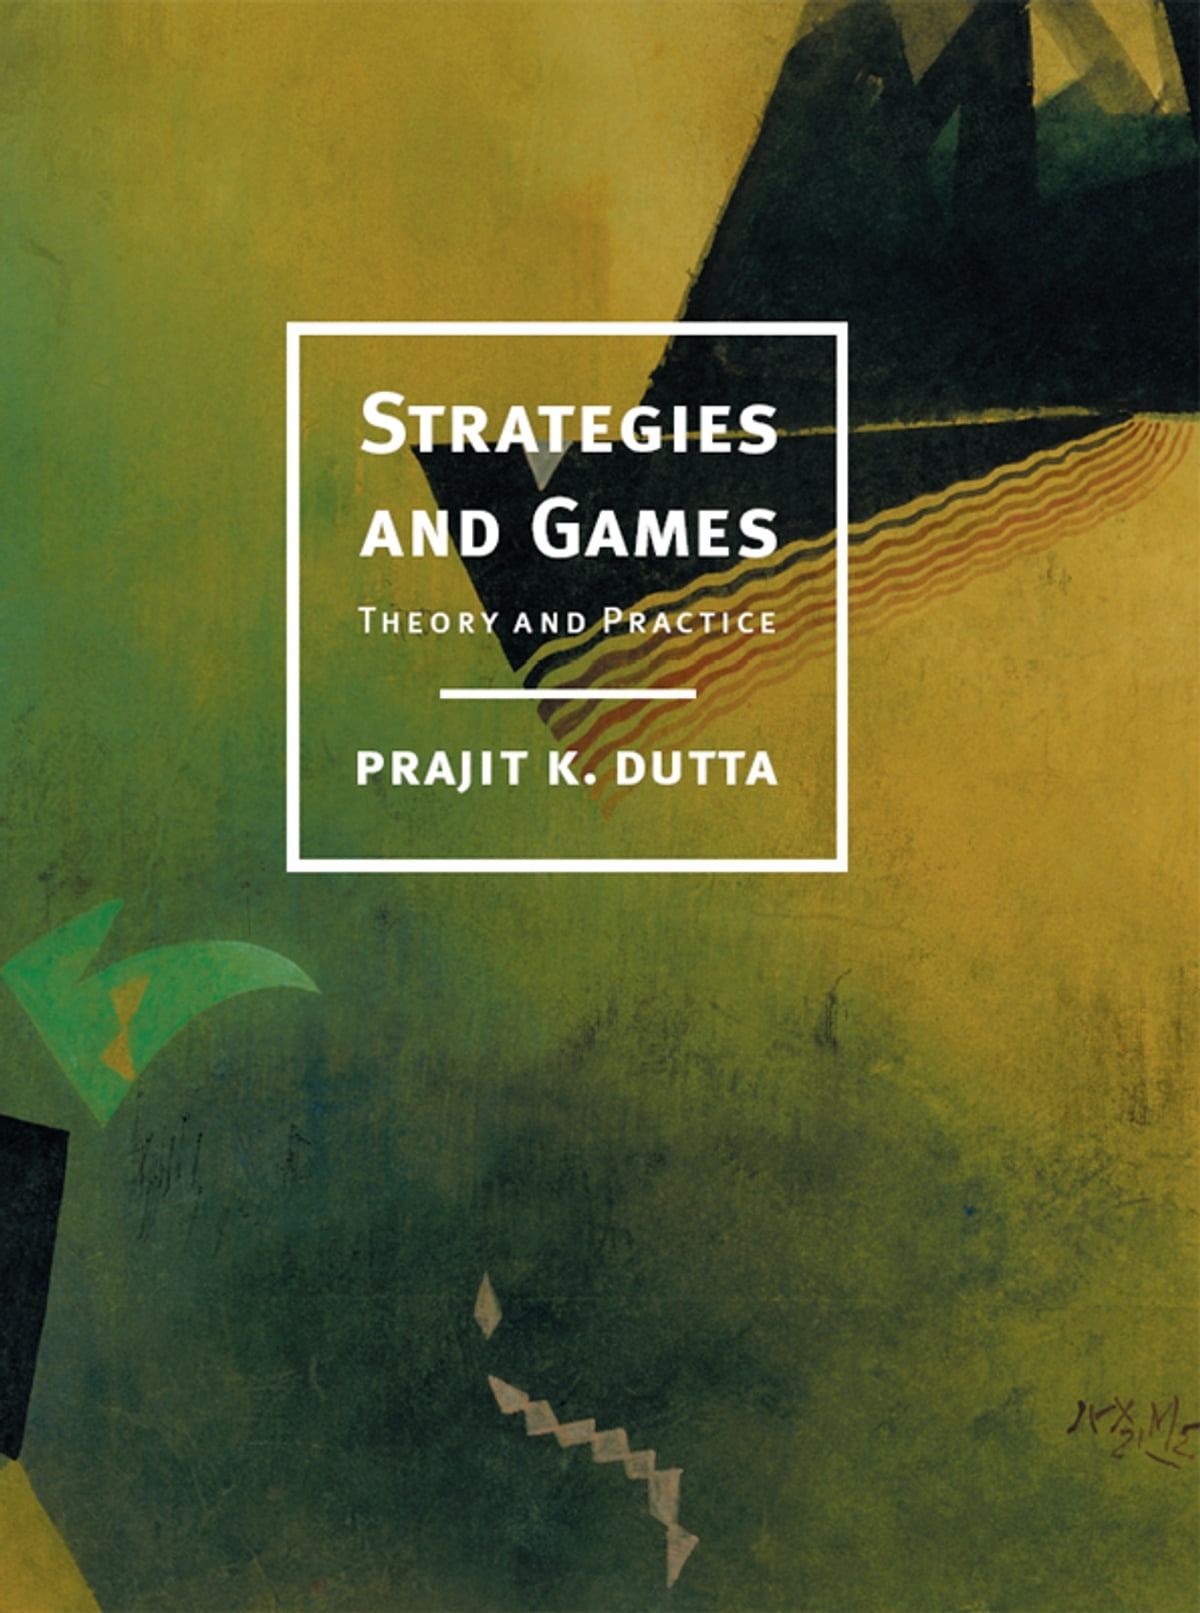 Strategies and Games eBook by Prajit K. Dutta - 9780262303774 | Rakuten Kobo